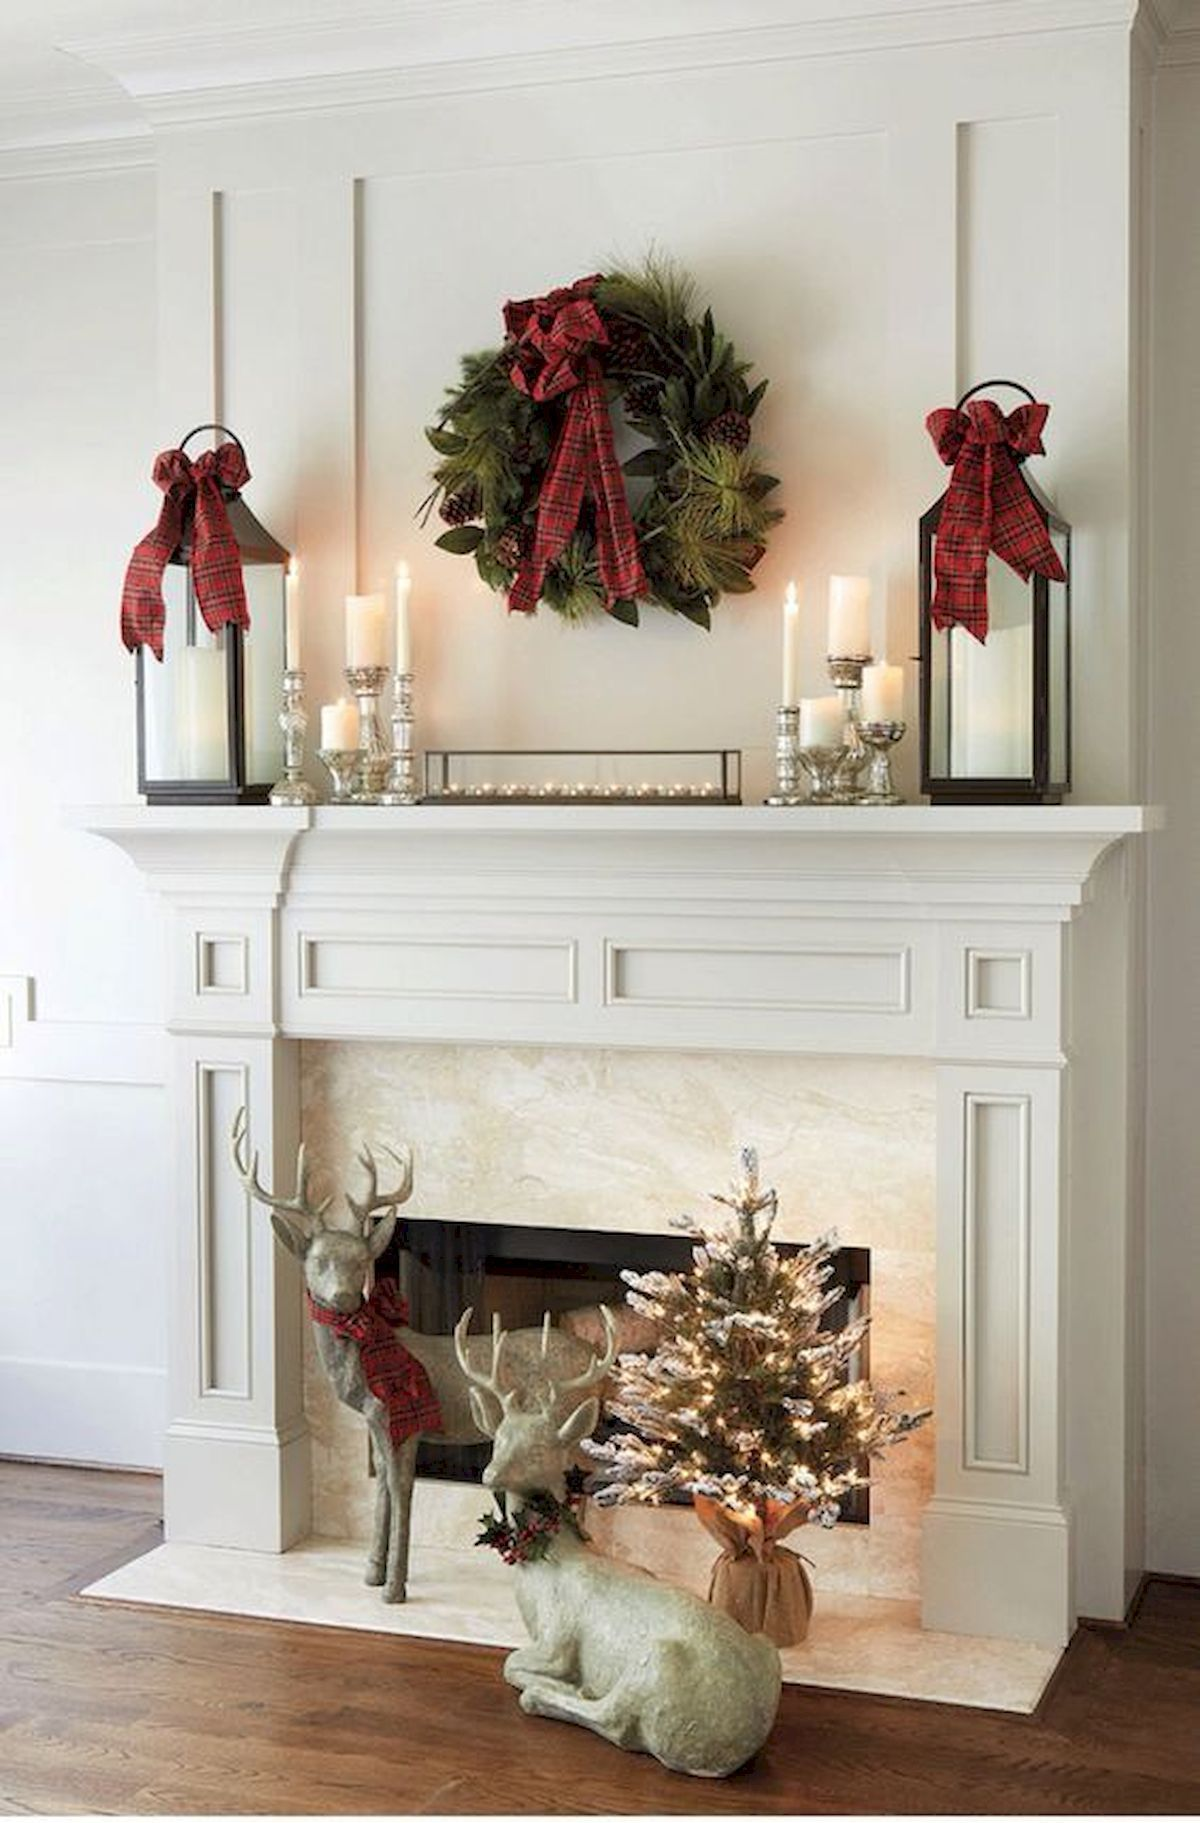 Adorable 60 Simple Christmas Living Room Decorations Ideas Httpsroomadnesscom